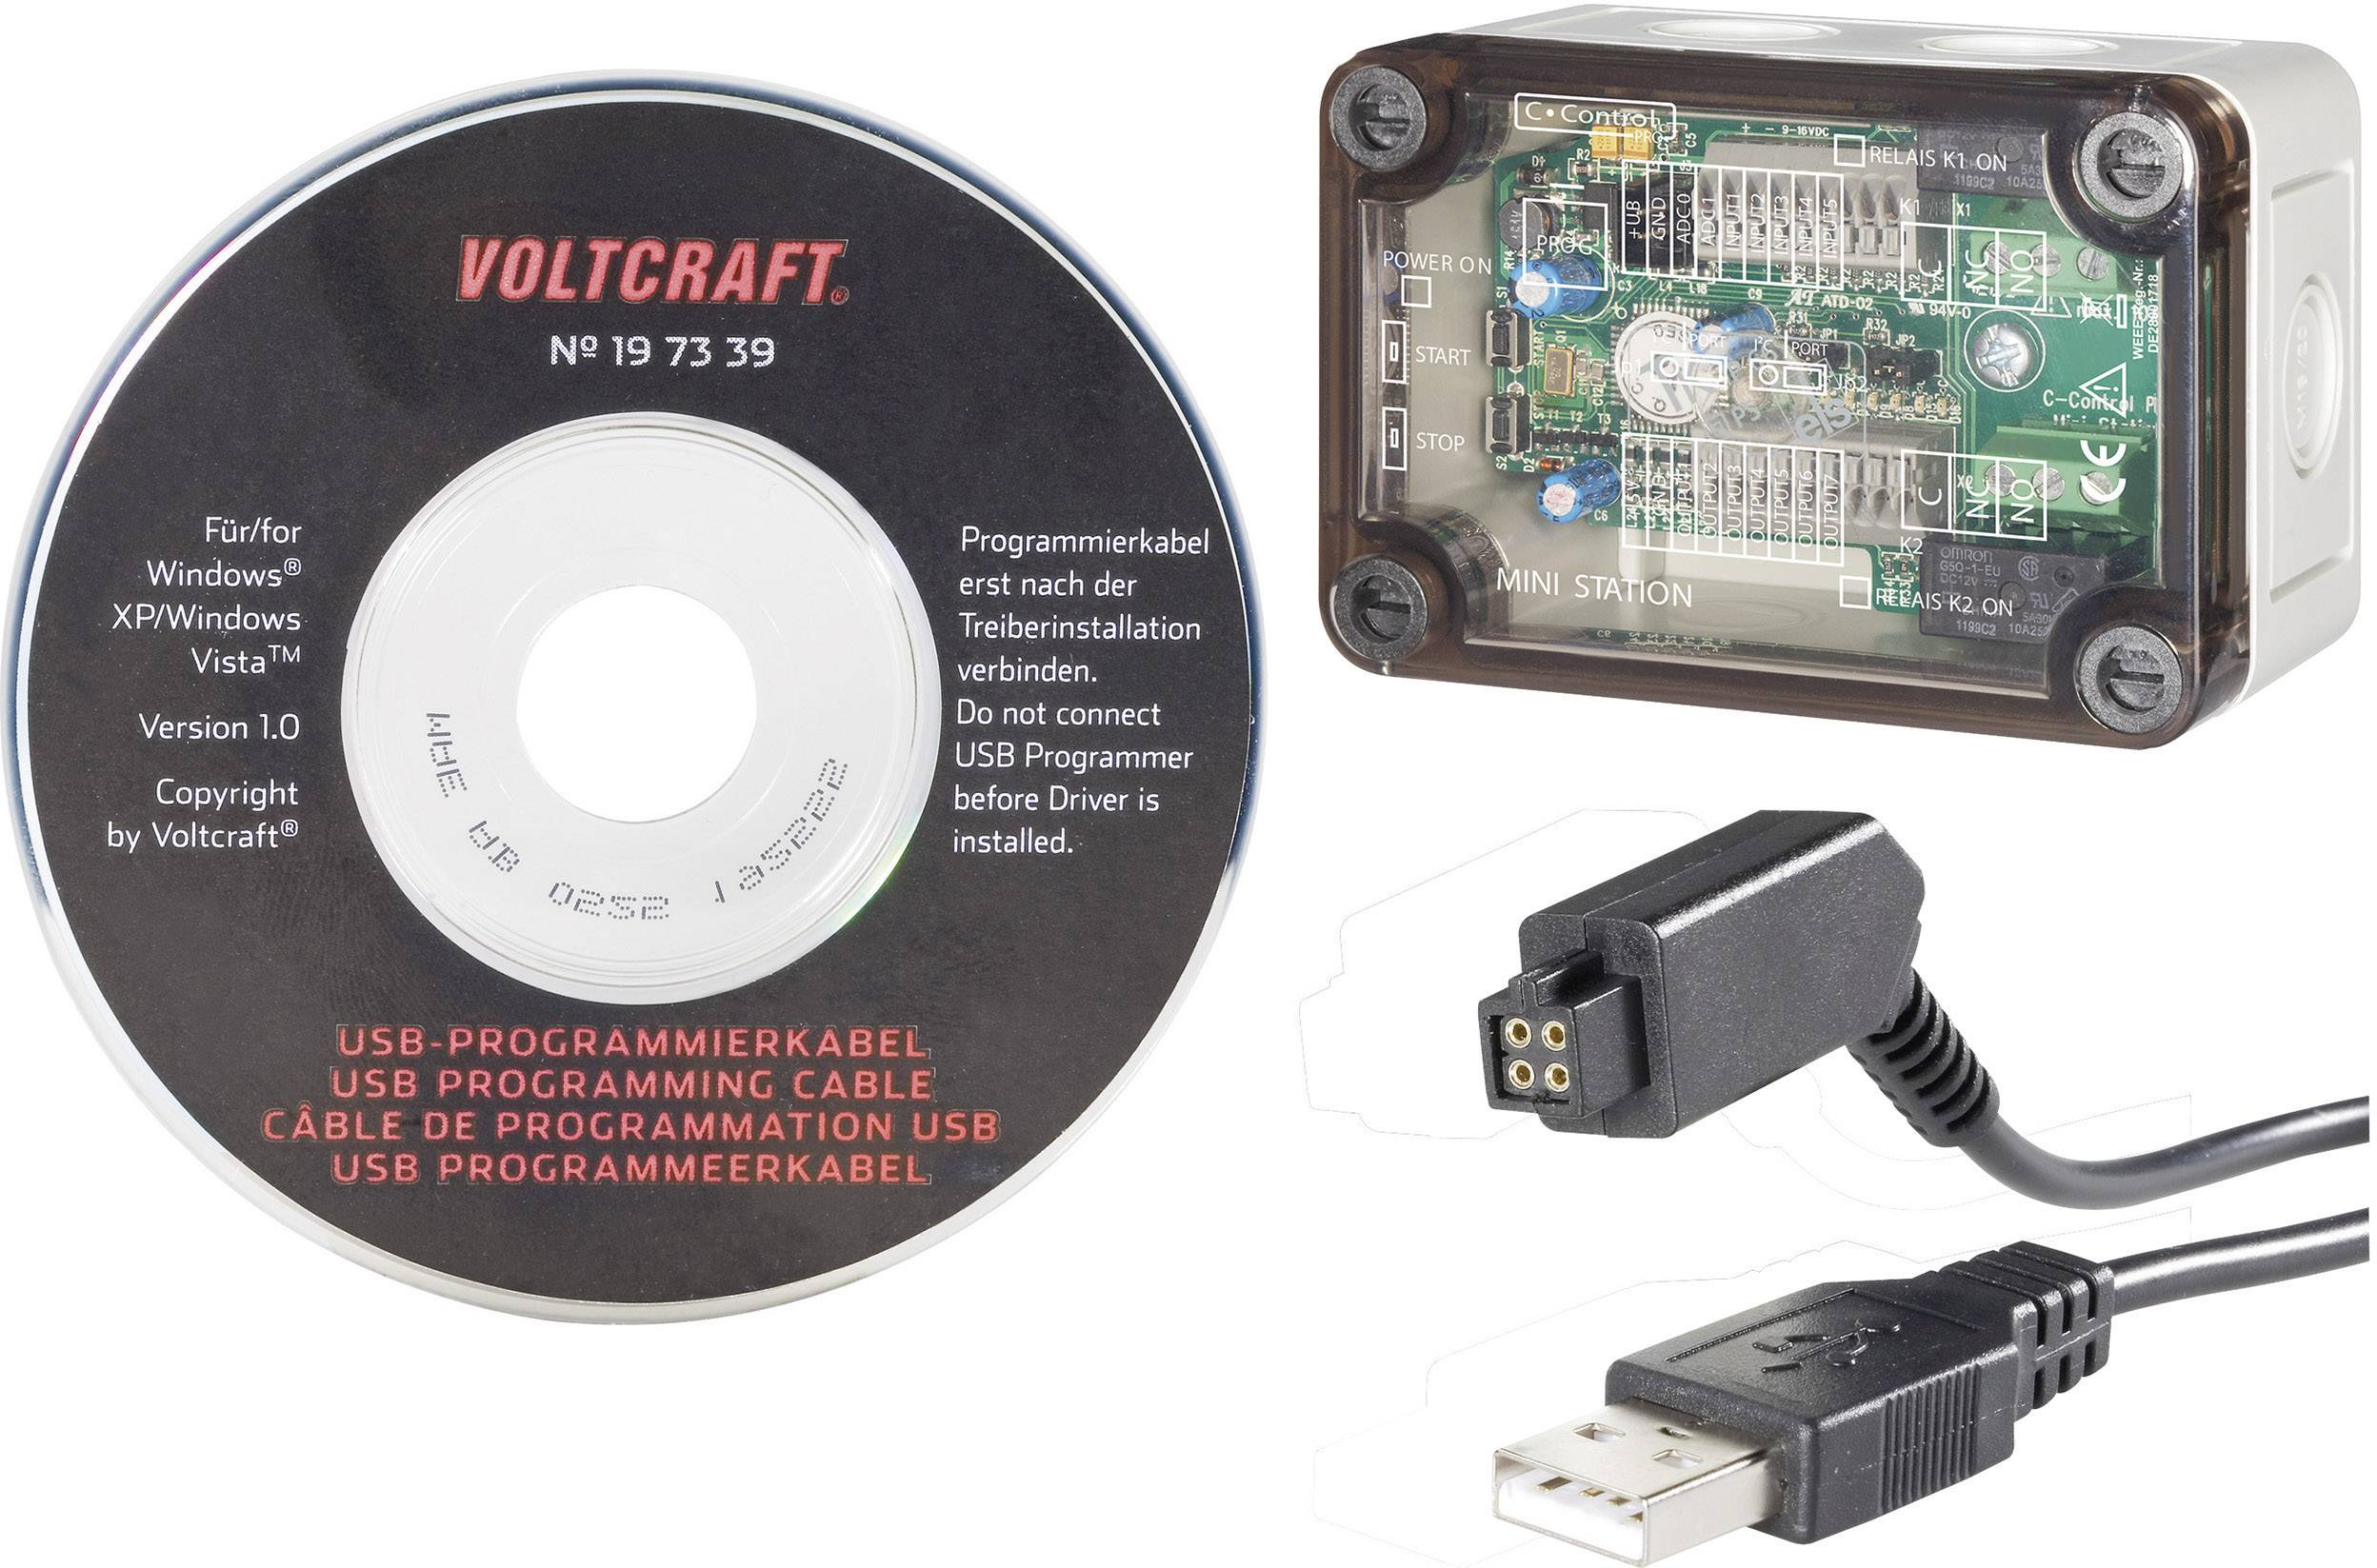 C-Control PRO Mini Station + VOLTCRAFT® USB-Programmierkabel 616686